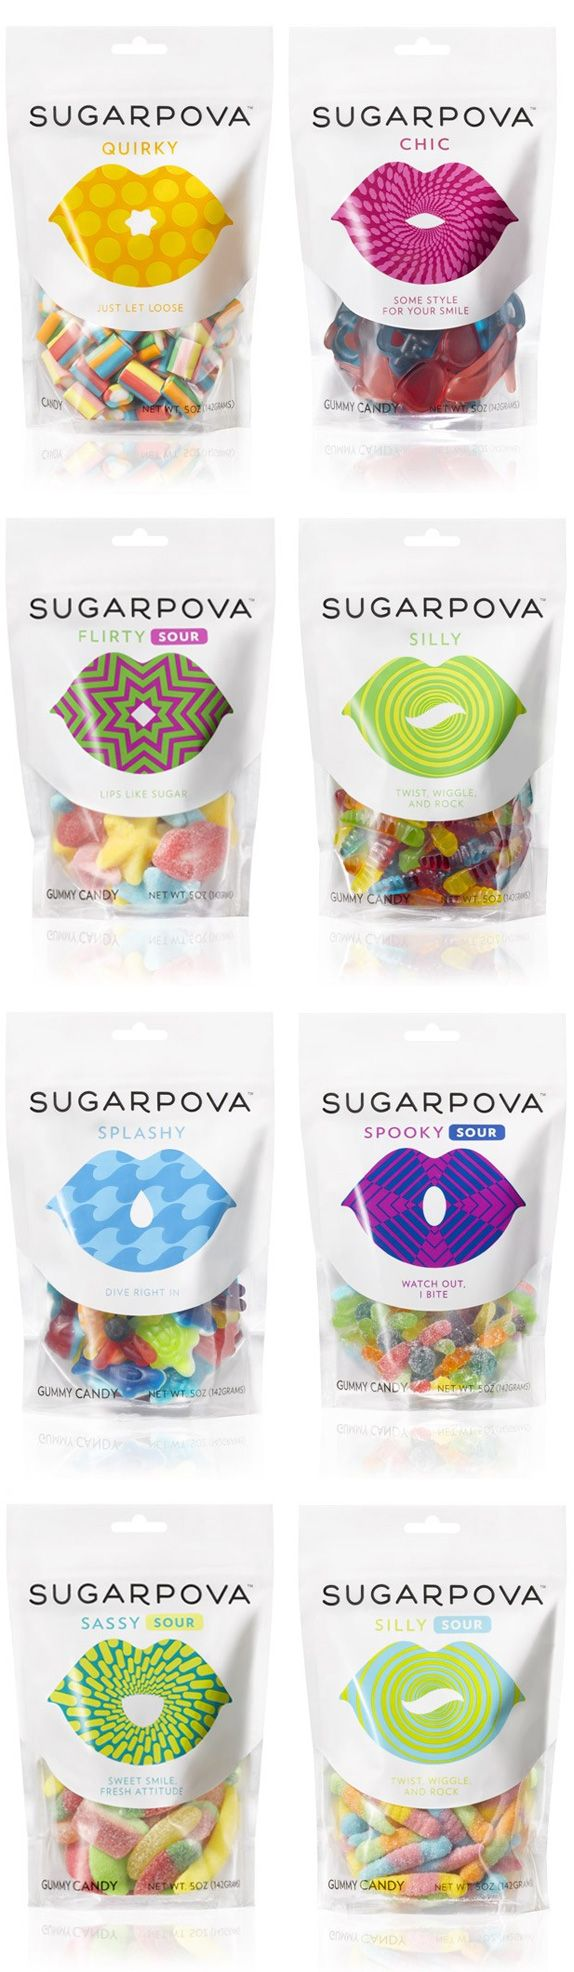 Sugarpova Logo and Packaging.lip shape that can be altered to convey the many attitudes of the brand — chic, cheeky, silly, sassy, flirty, quirky, spooky, and smitten — corresponding with different shapes and flavors of the gummies themselves.